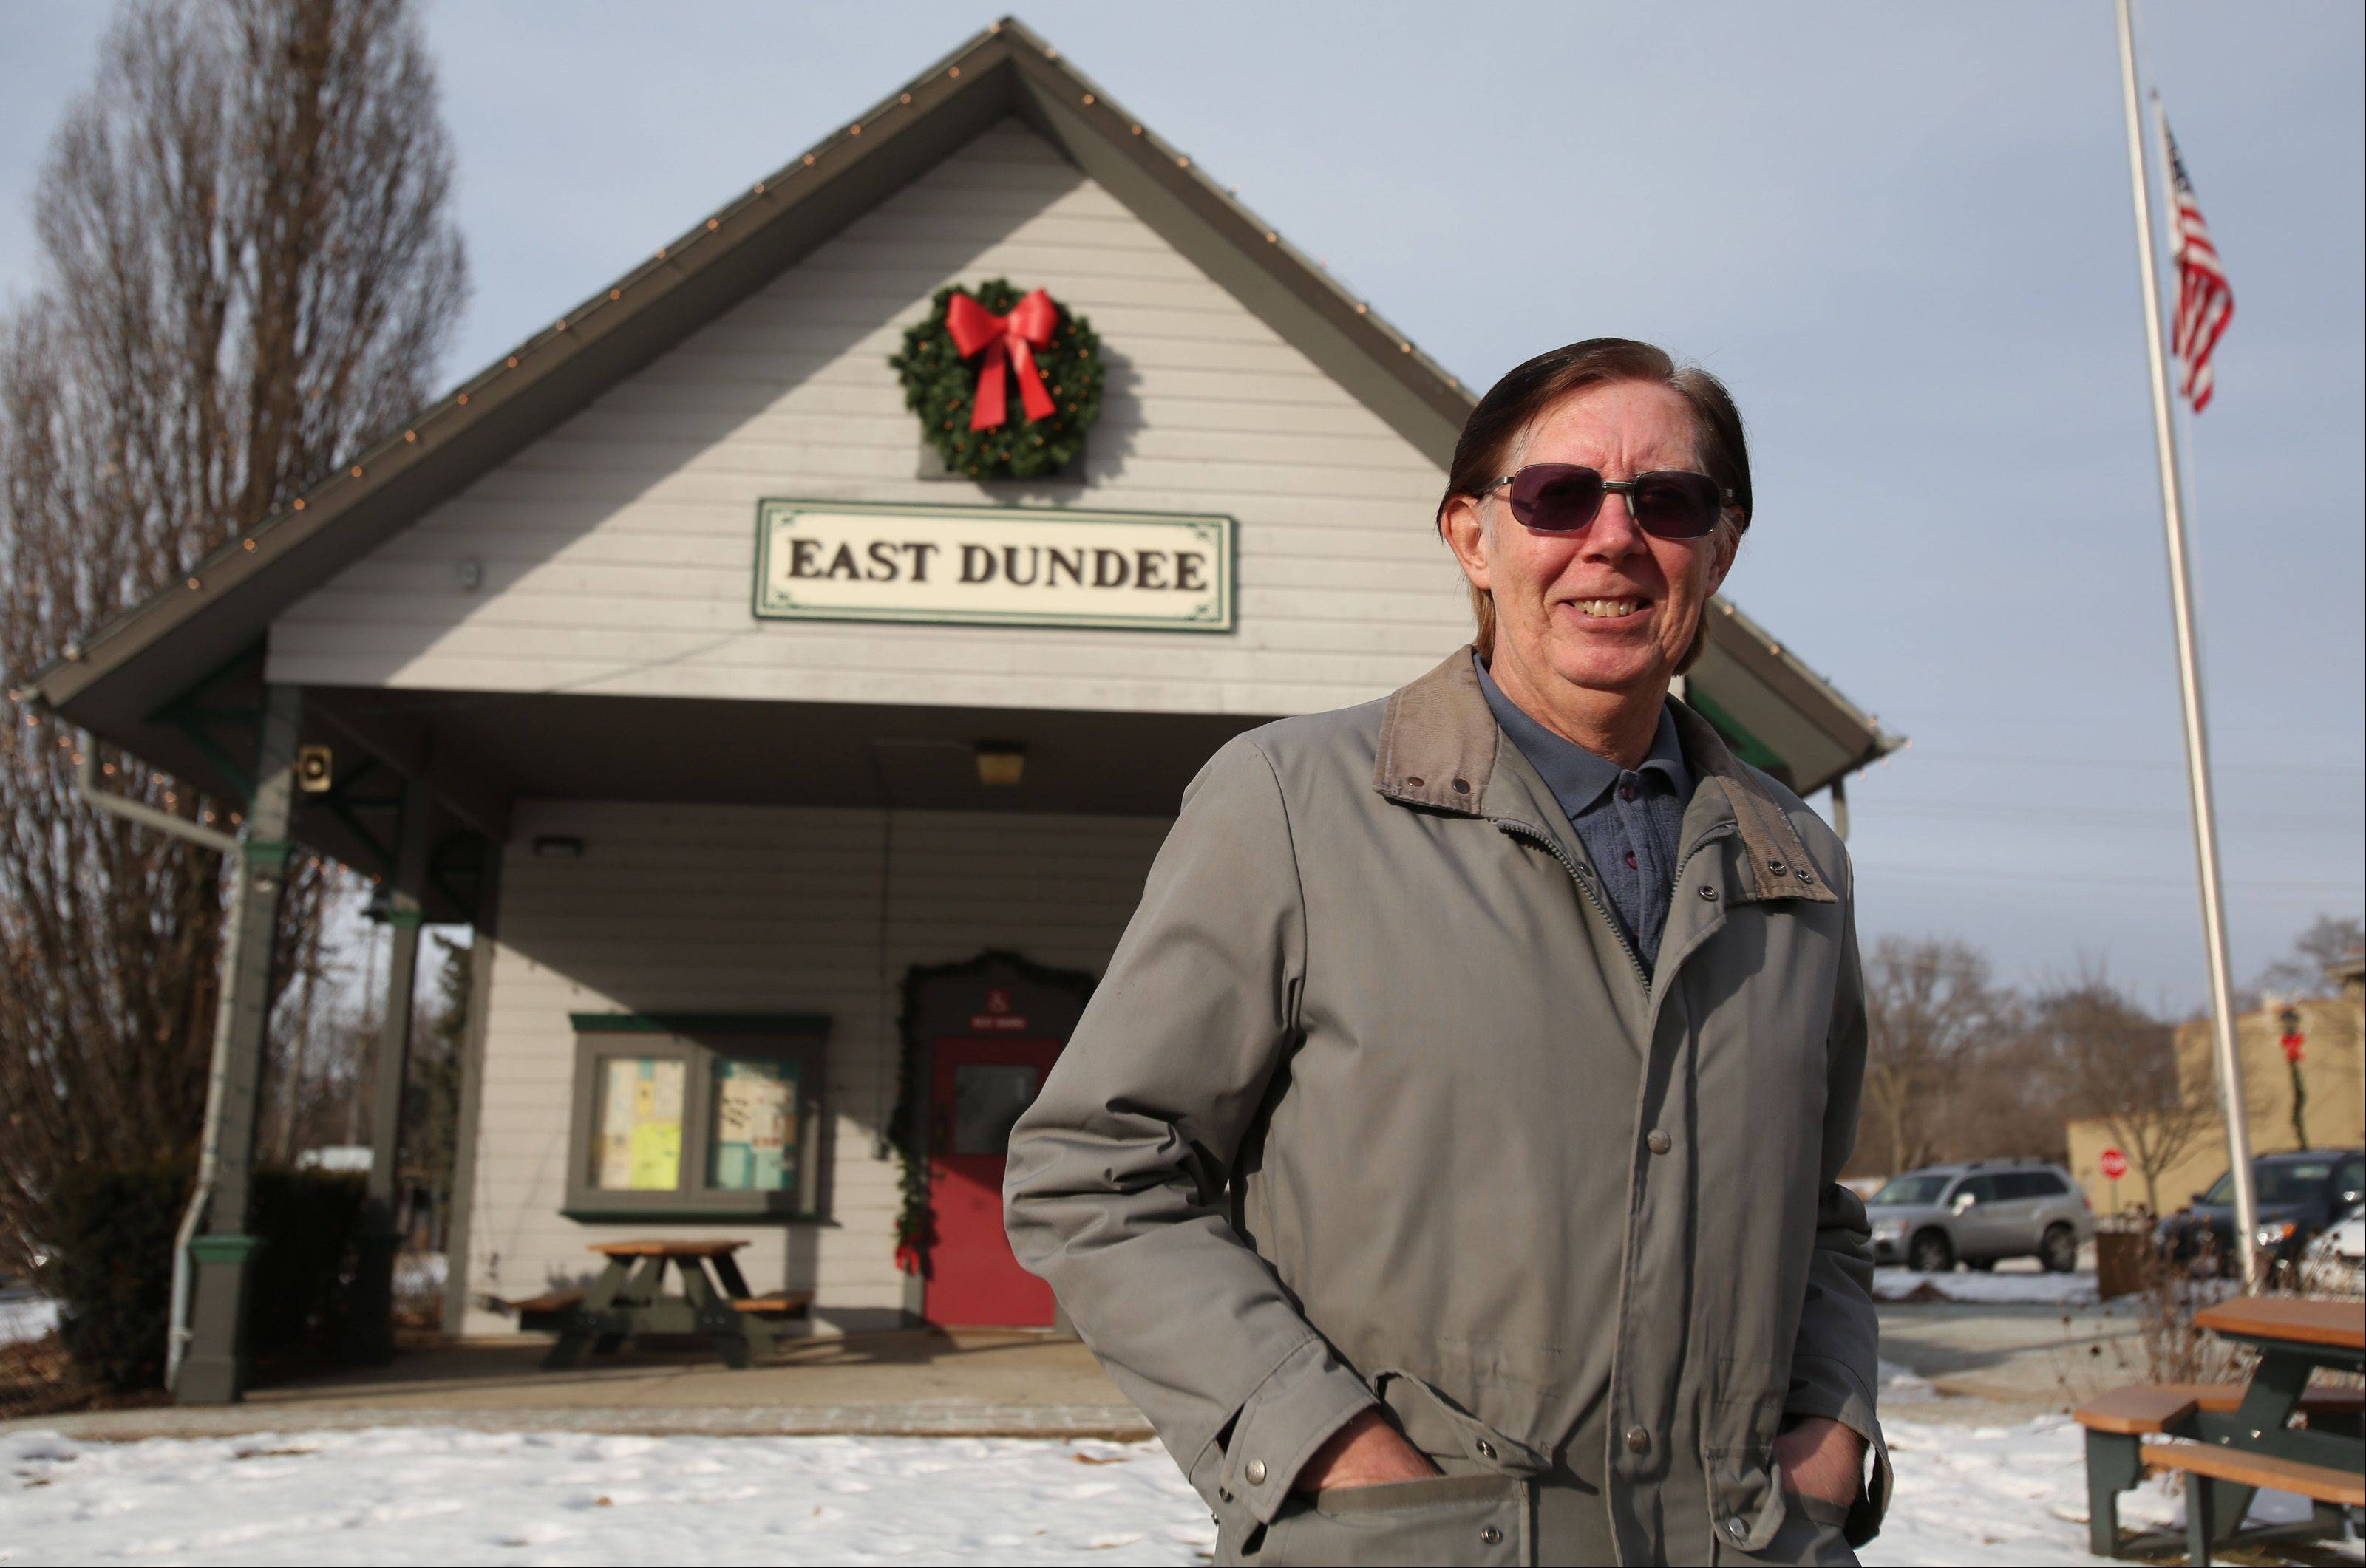 Bill Zelsdorf, of Carpentersville, recently received East Dundee�s inaugural community service award for his work at the Dundee Township Visitor�s Center, also known as The Depot, in East Dundee. Zelsdorf has been affiliated with The Depot for 17 years as a board member, manager and contest coordinator.